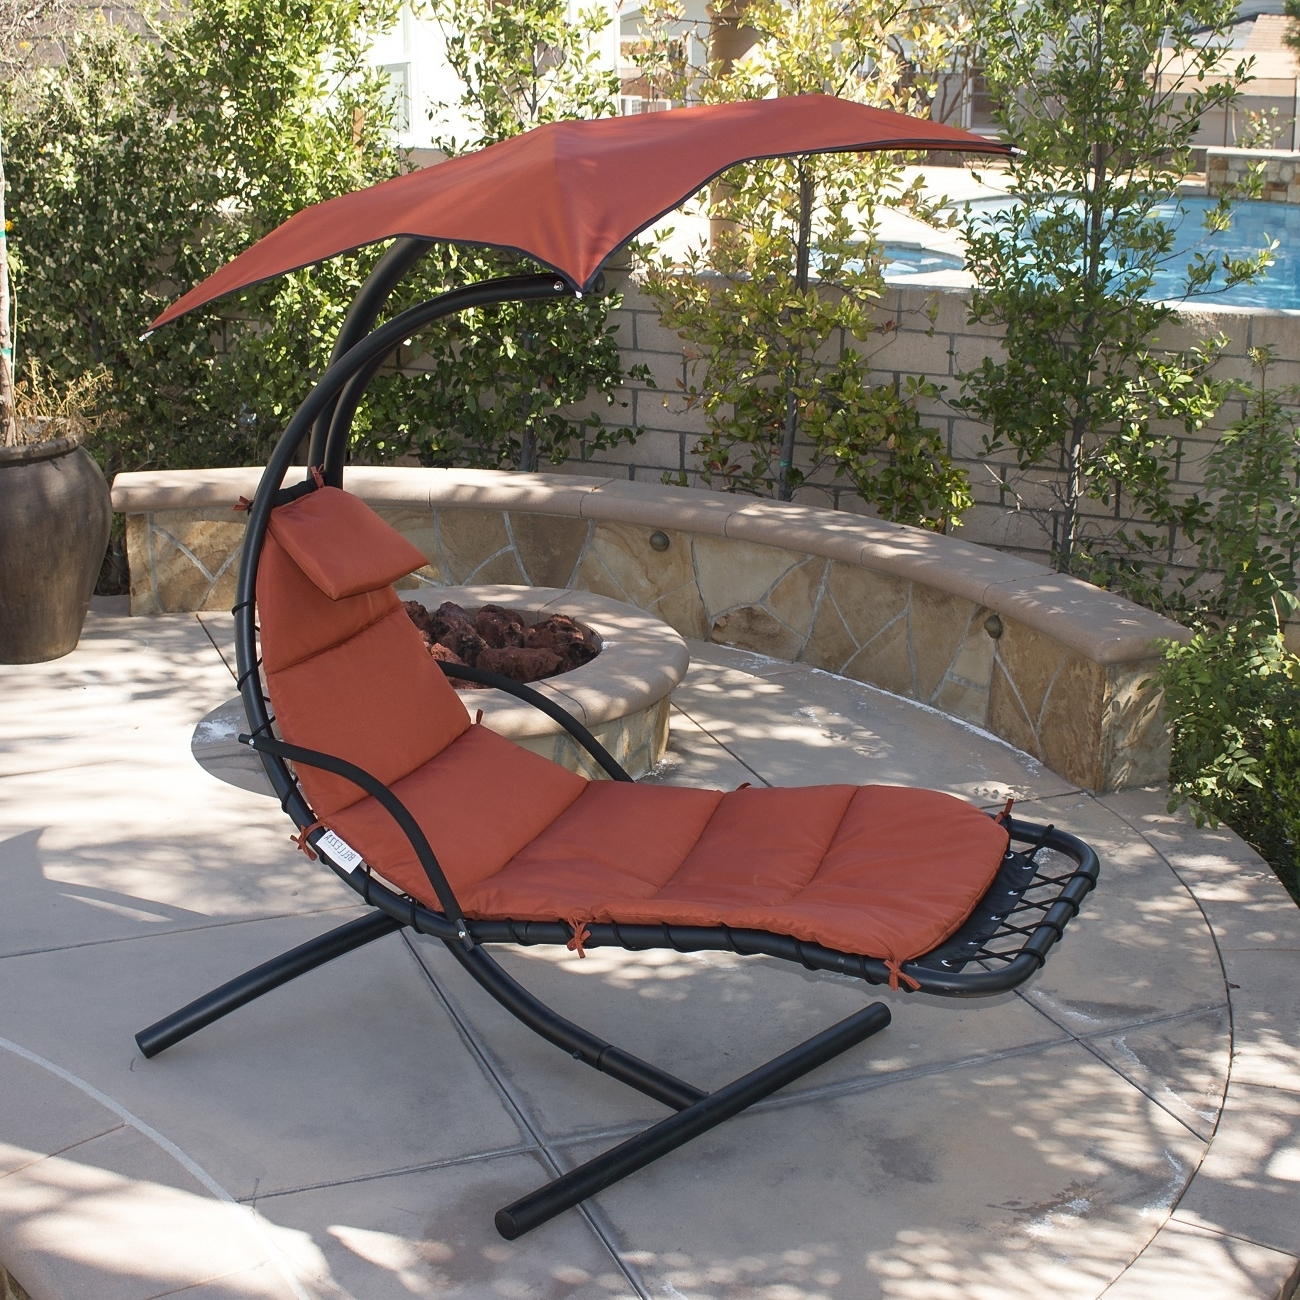 Most Current Chaise Lounge Chair With Canopy • Lounge Chairs Ideas With Outdoor Chaise Lounge Chairs With Canopy (View 3 of 15)